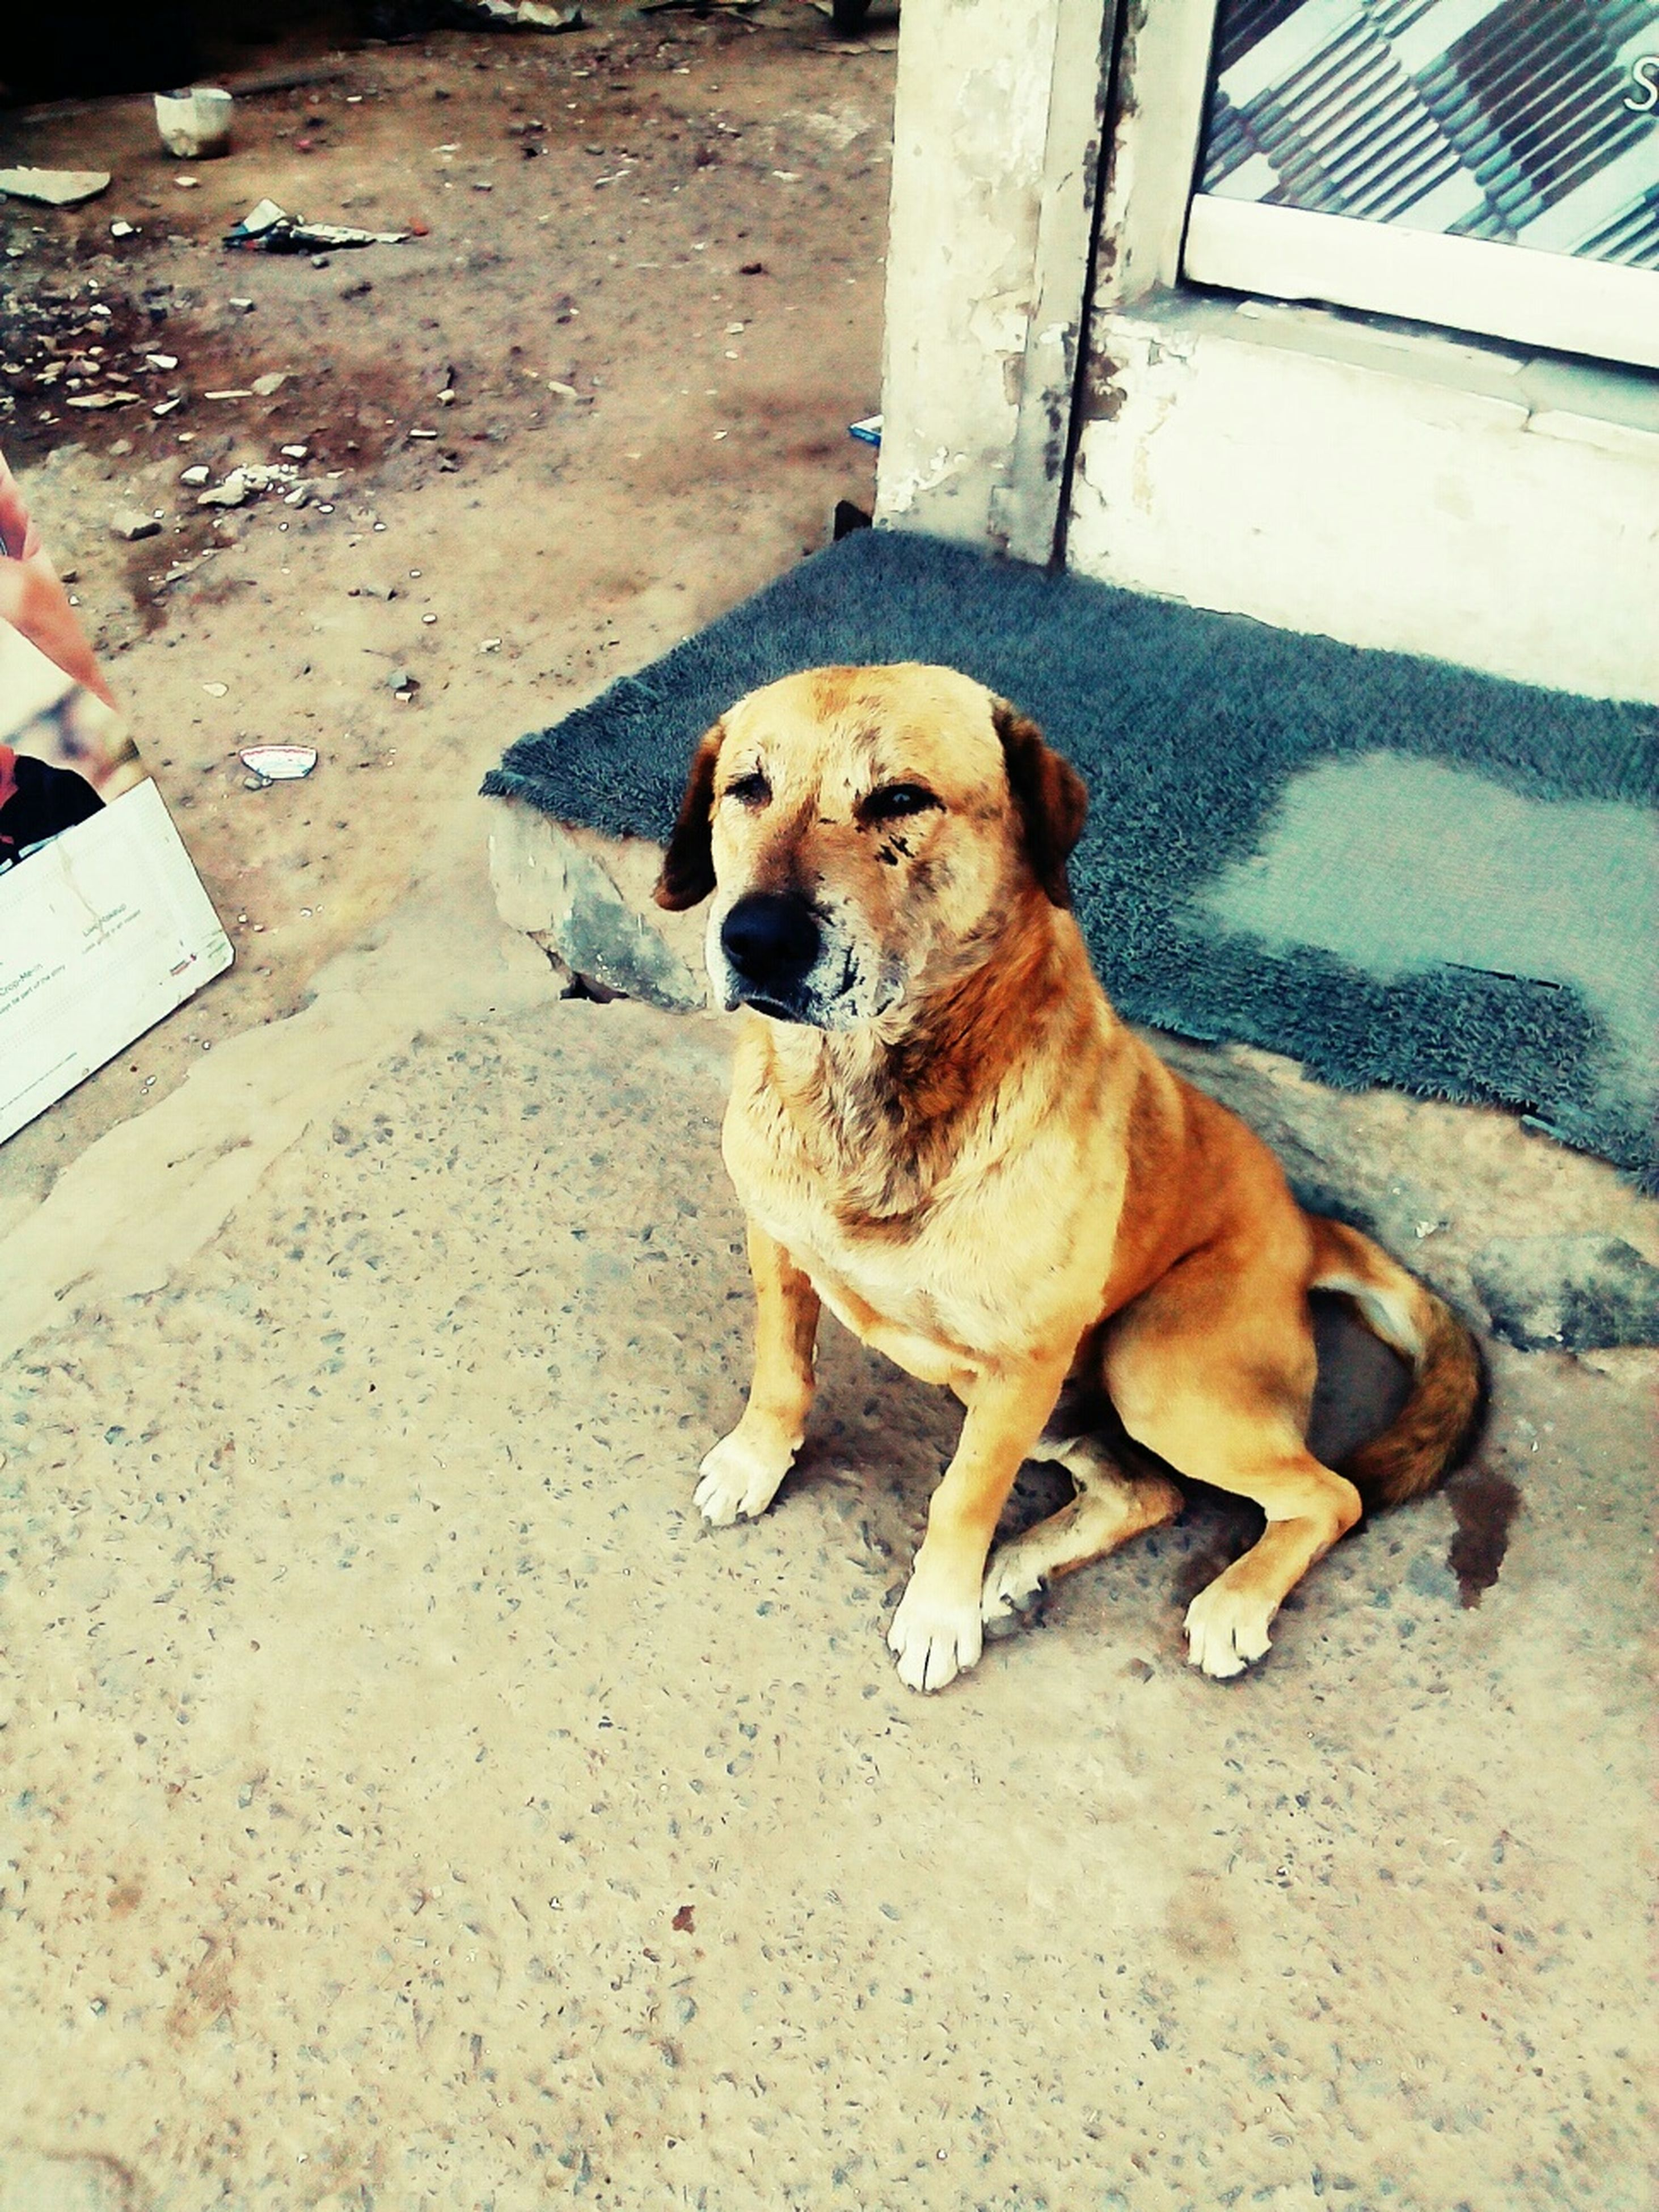 pets, domestic animals, dog, mammal, animal themes, one animal, sitting, portrait, looking at camera, full length, relaxation, high angle view, pet collar, street, zoology, no people, outdoors, day, standing